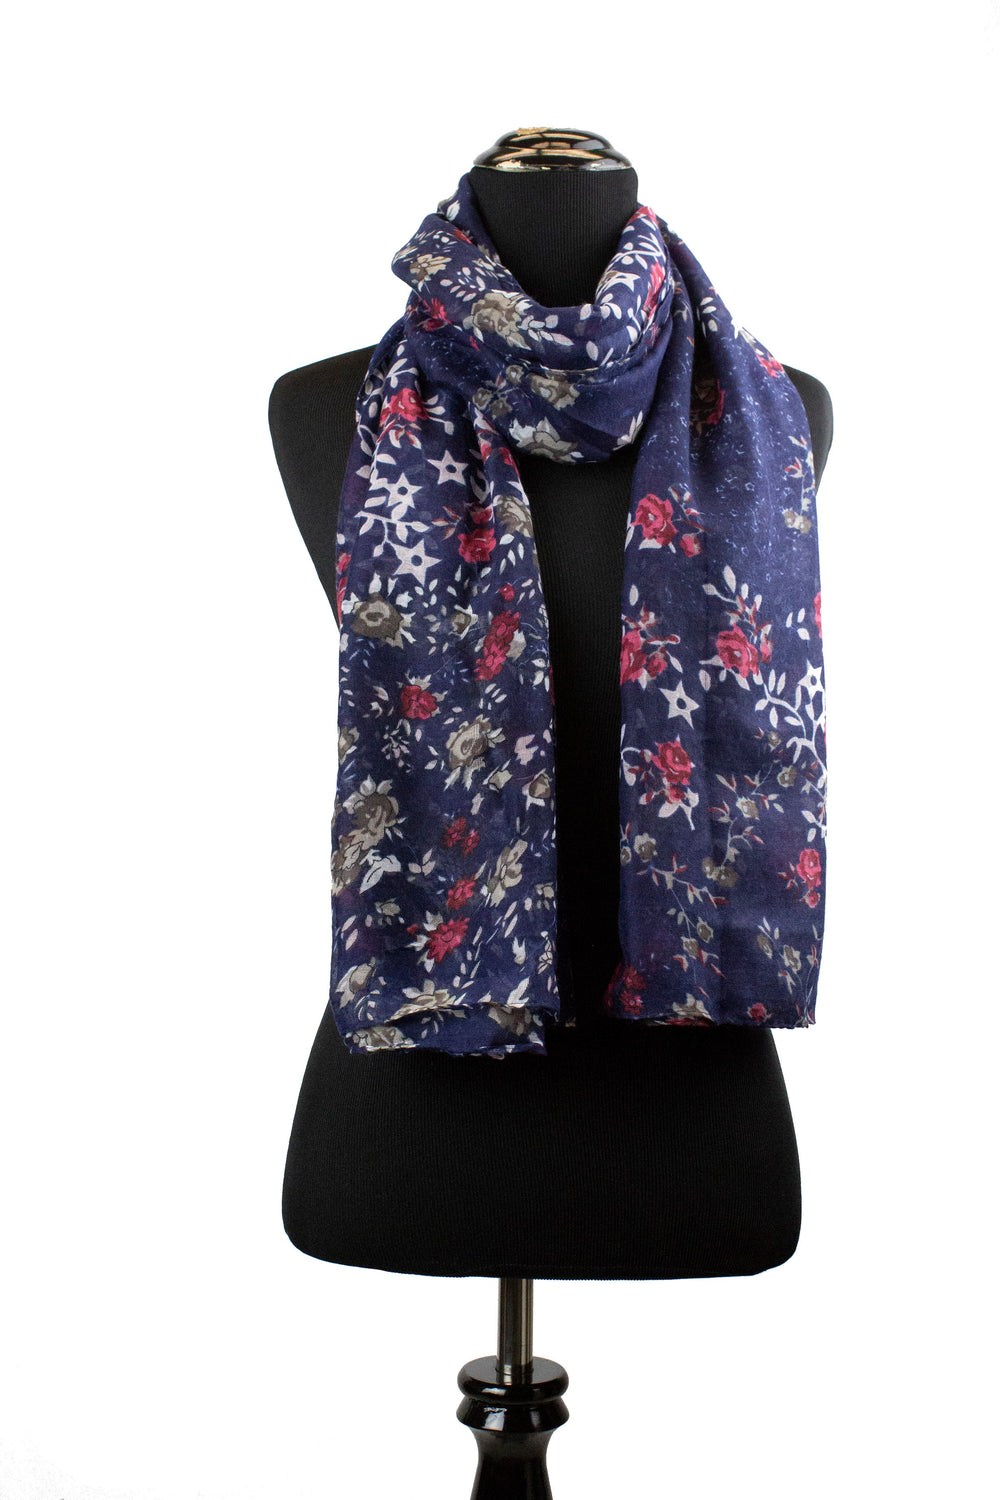 floral print hijab in navy and white